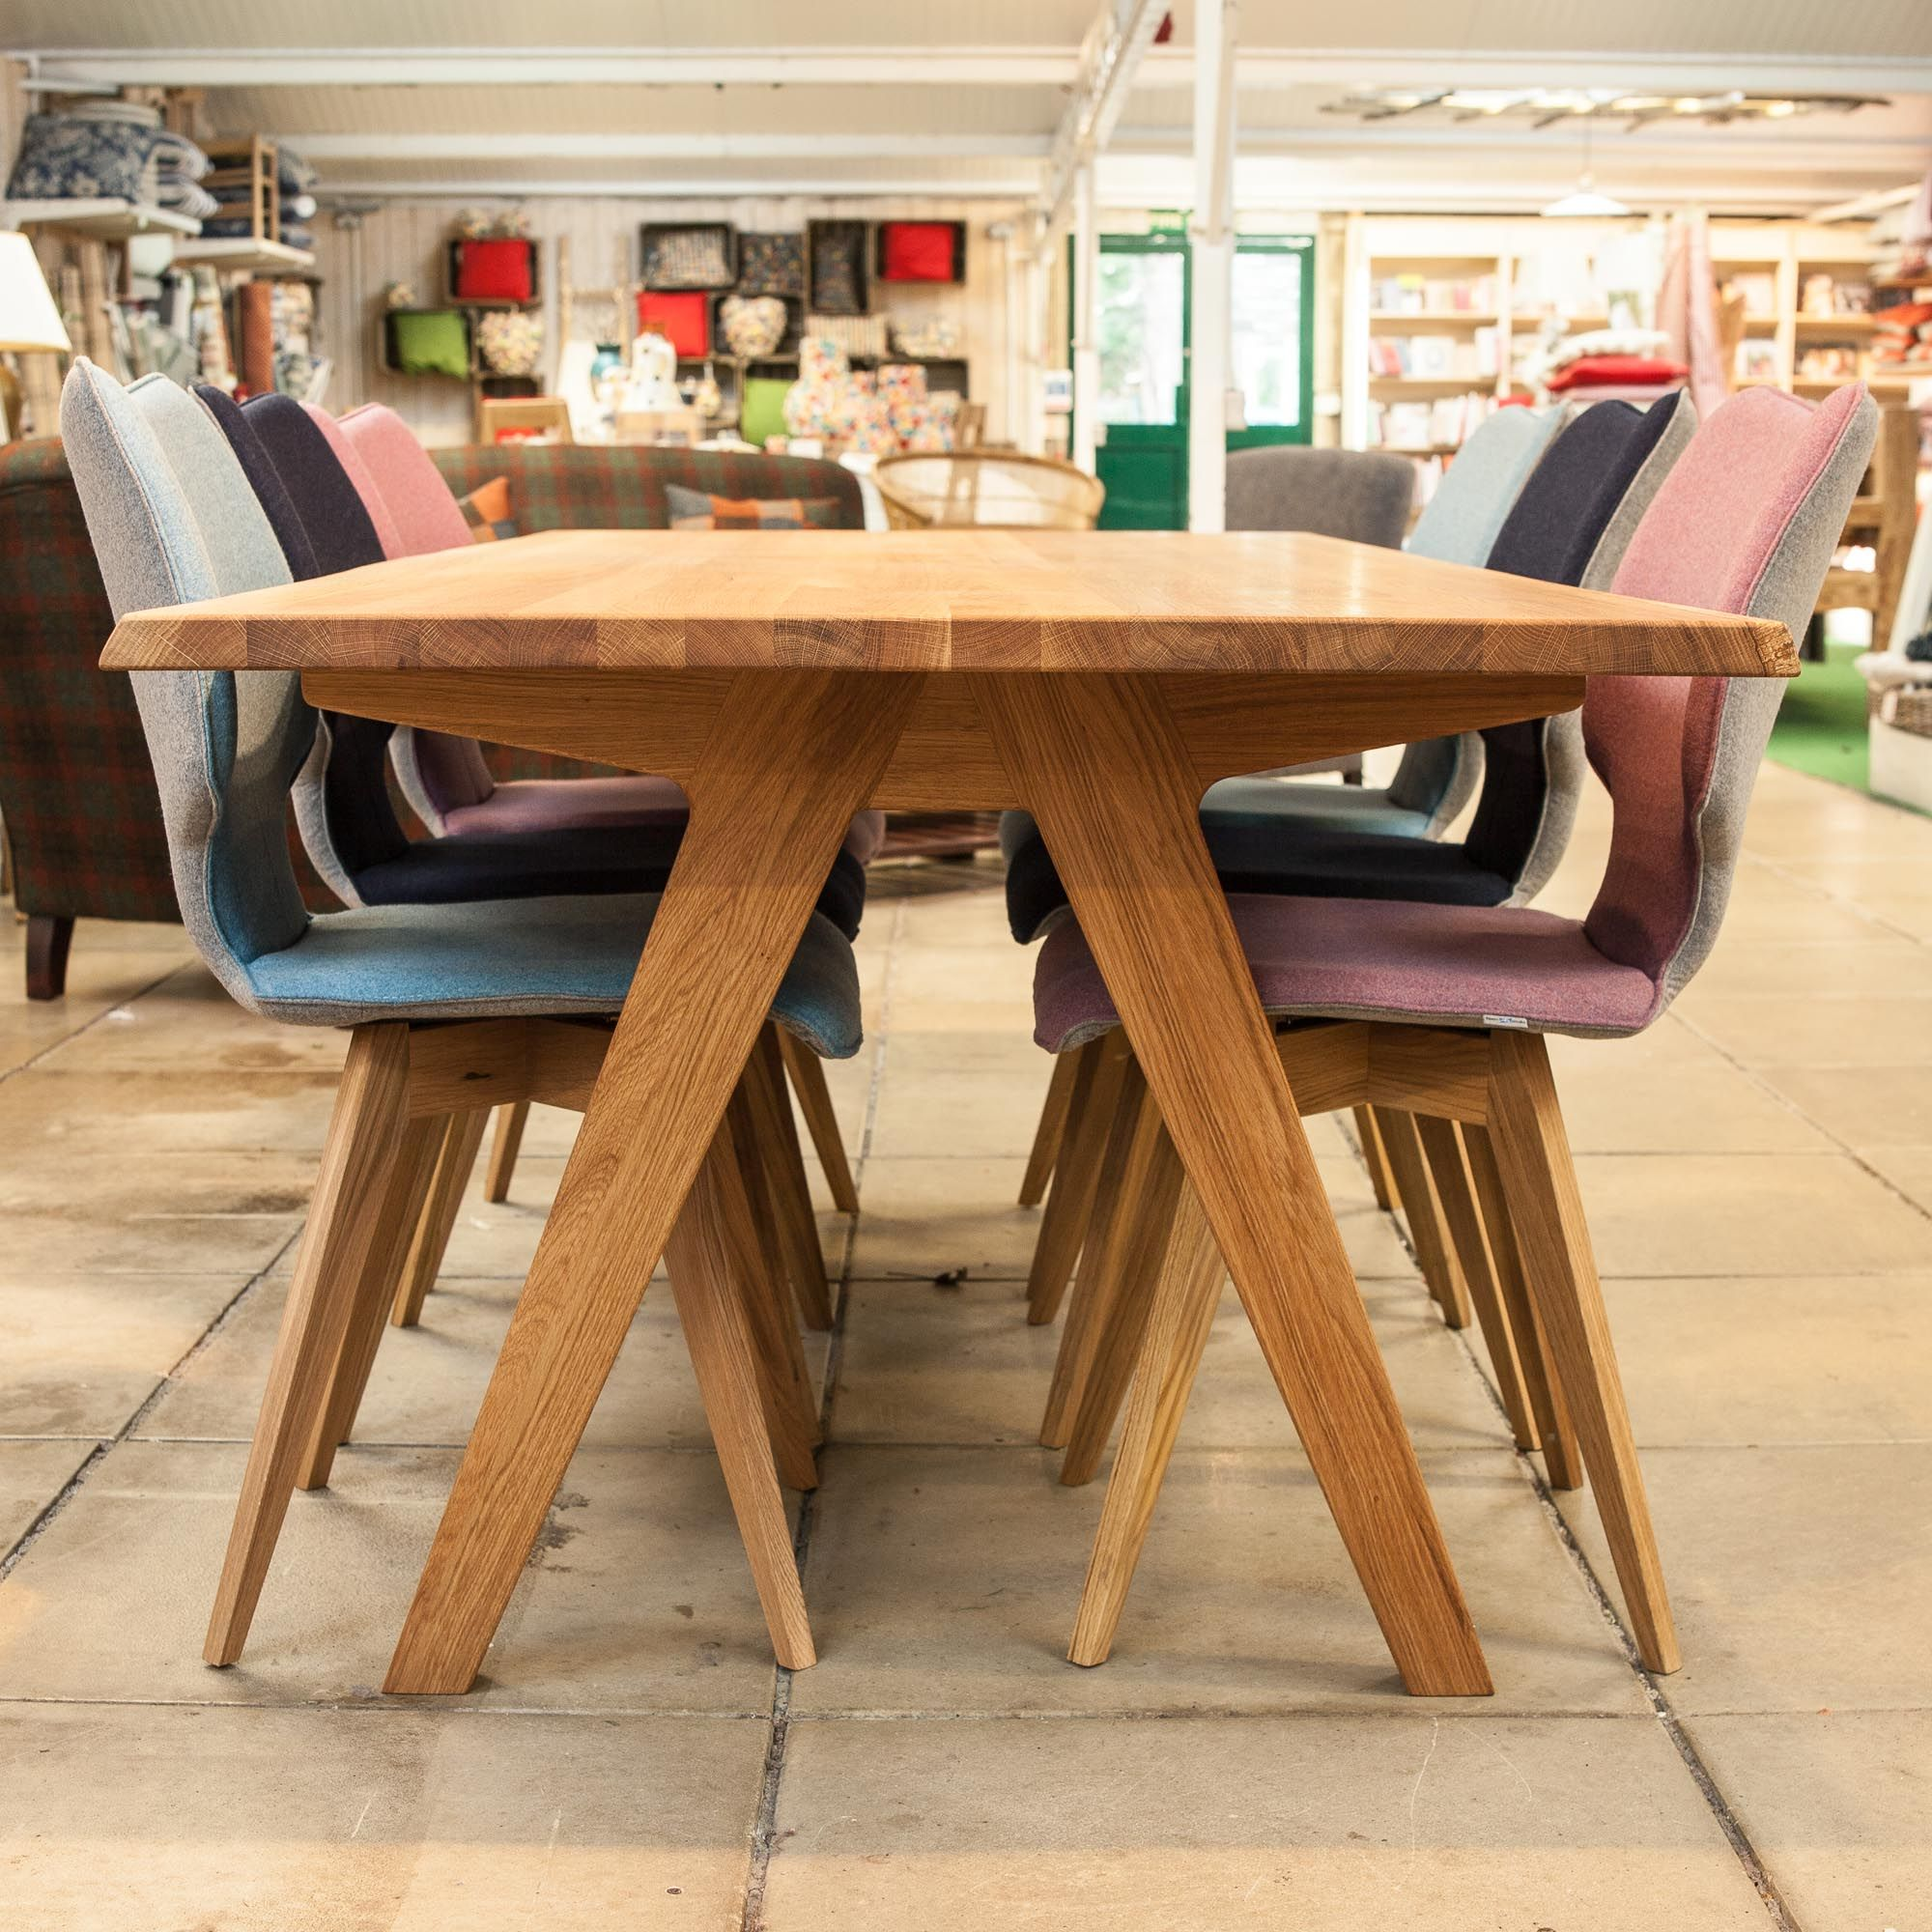 Buy Delta Oak Dining Tables  Unusual Furniture  Burford Garden Glamorous Hardwood Dining Room Furniture Design Decoration